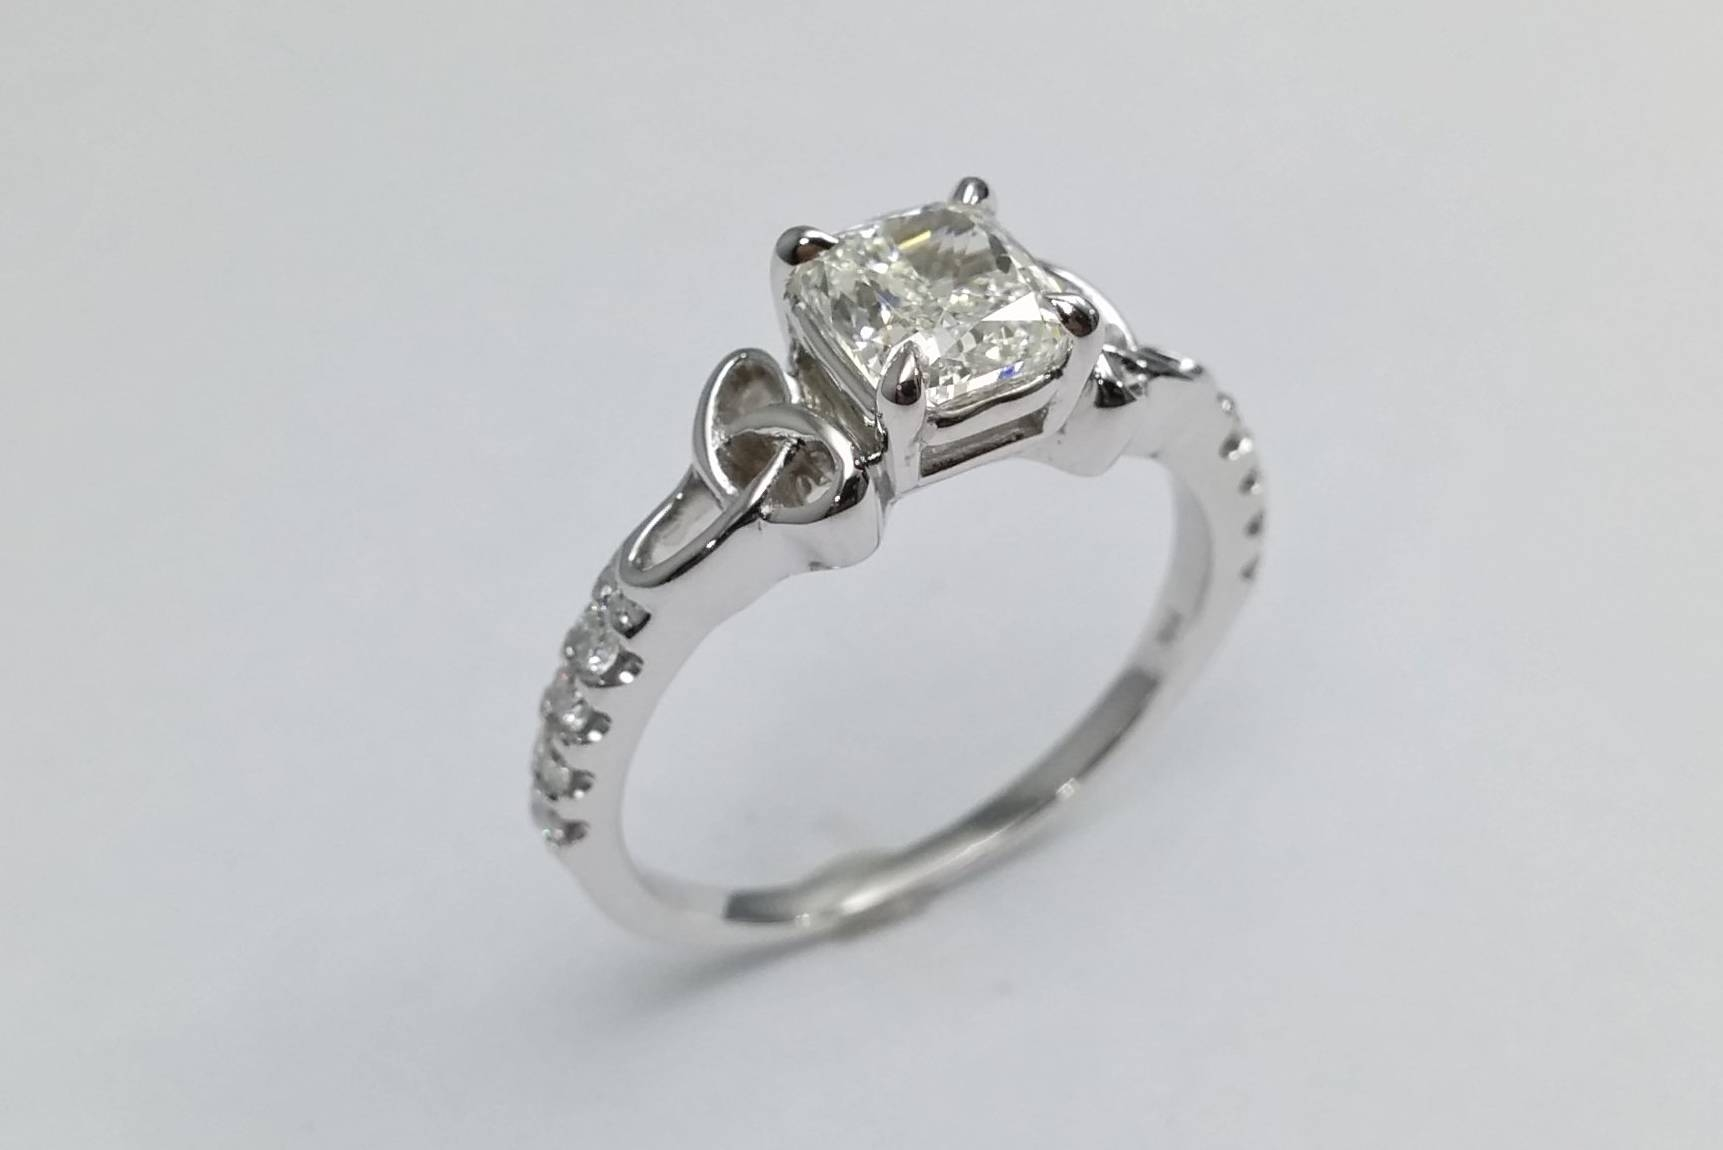 Celtic – Engagement Rings From Mdc Diamonds Nyc In Trinity Knot Engagement Rings (View 10 of 15)